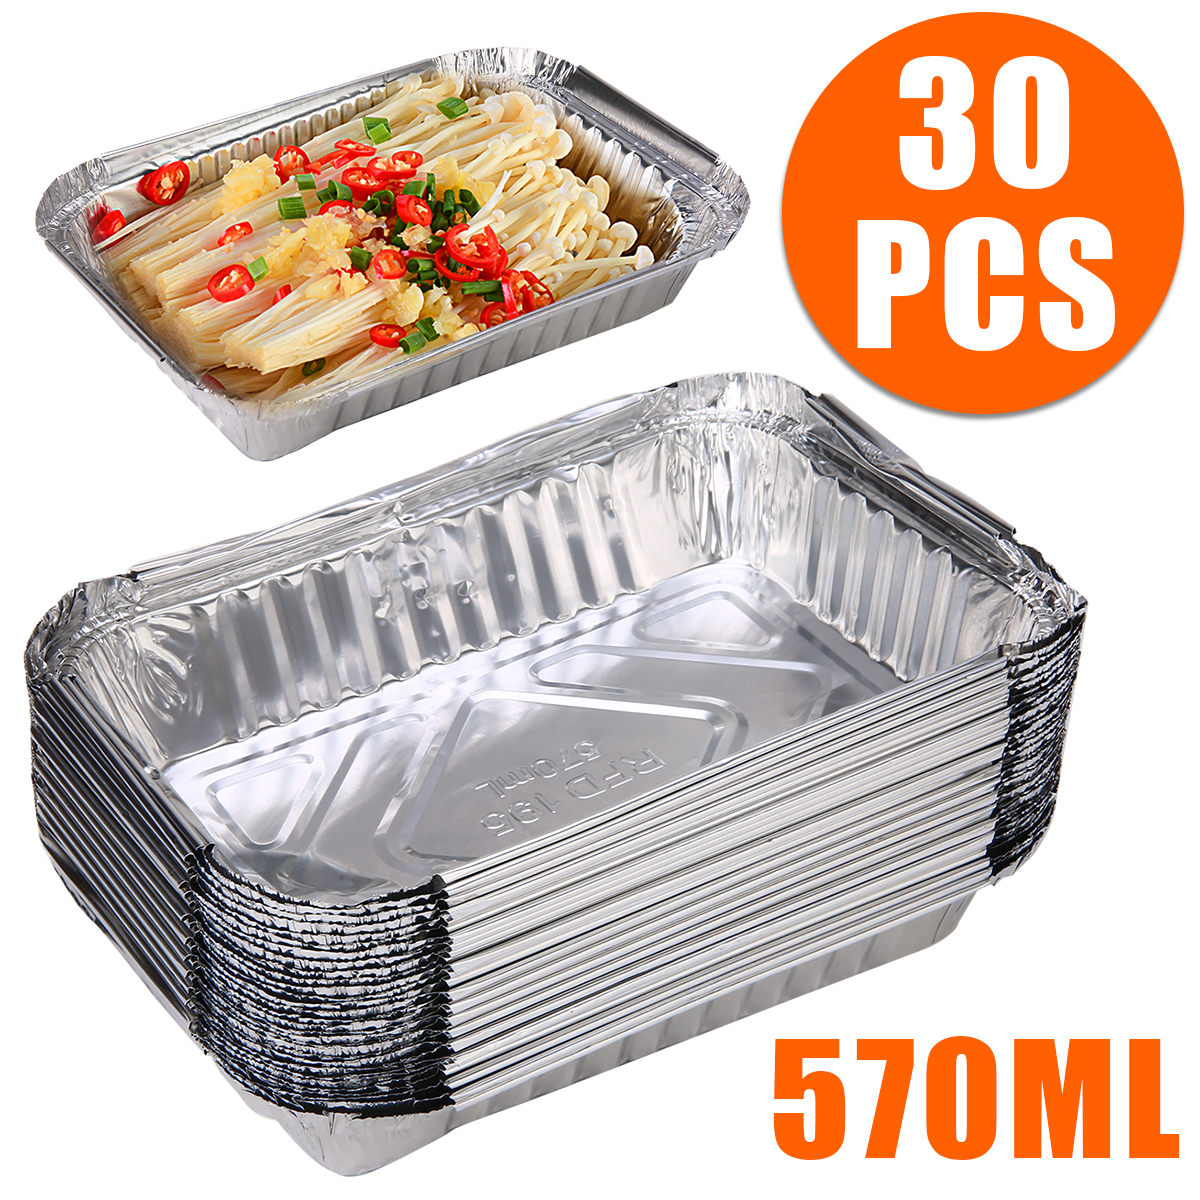 30pcs BBQ Aluminum Foil Grease Drip Pans Recyclable Grill Catch Tray Catch Pans Replacement Liner Trays For BBQ Tools